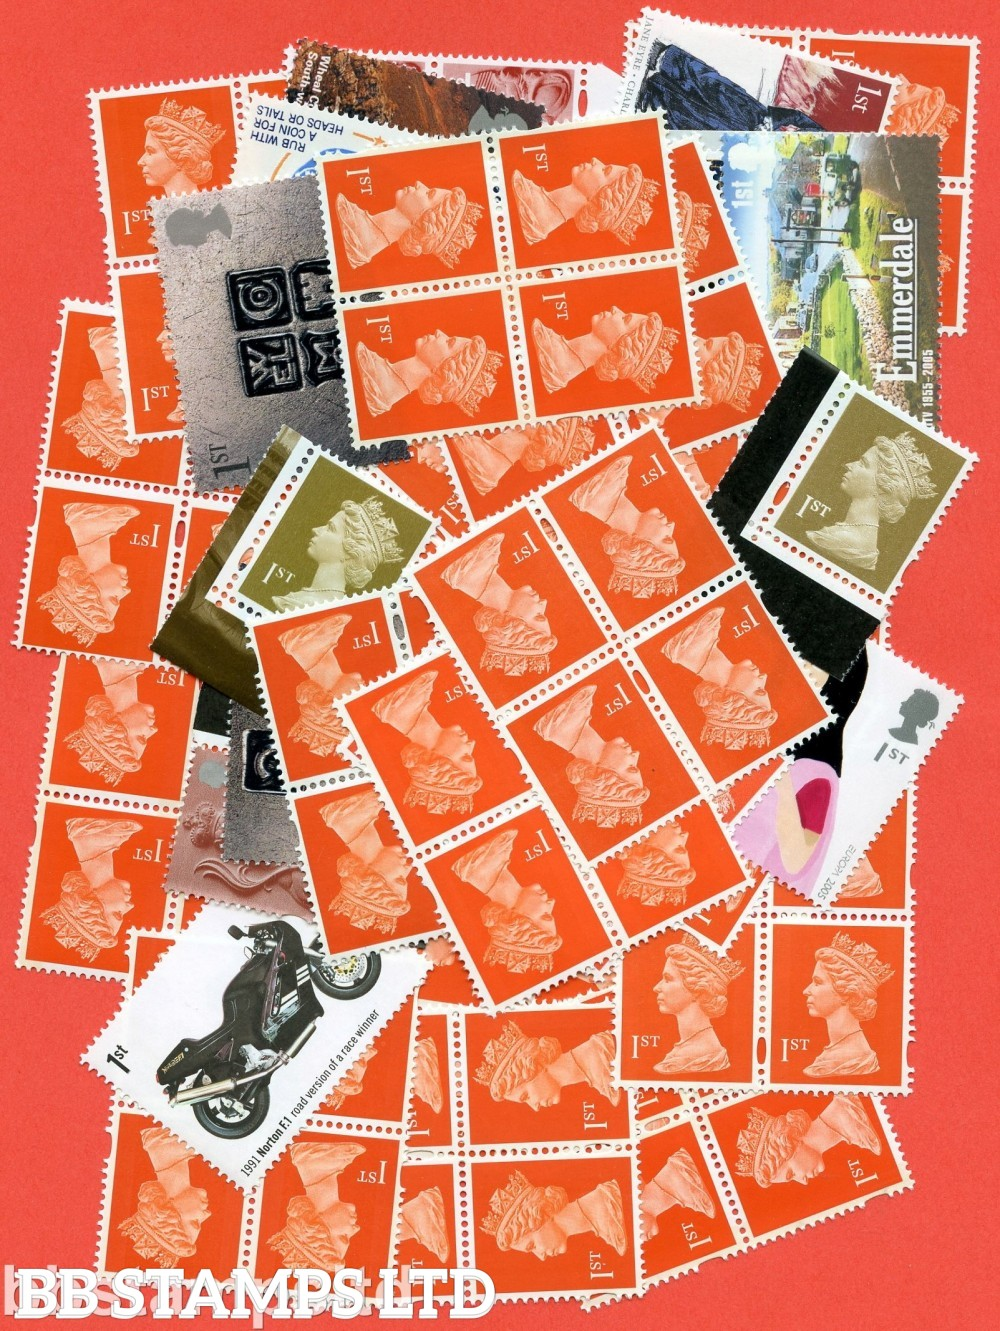 500 1st Class (70p) stamps. £350.00 of face value Postage at 80.75%. All of our postage lots are genuine mint stamps with gum and have never been used as postage.